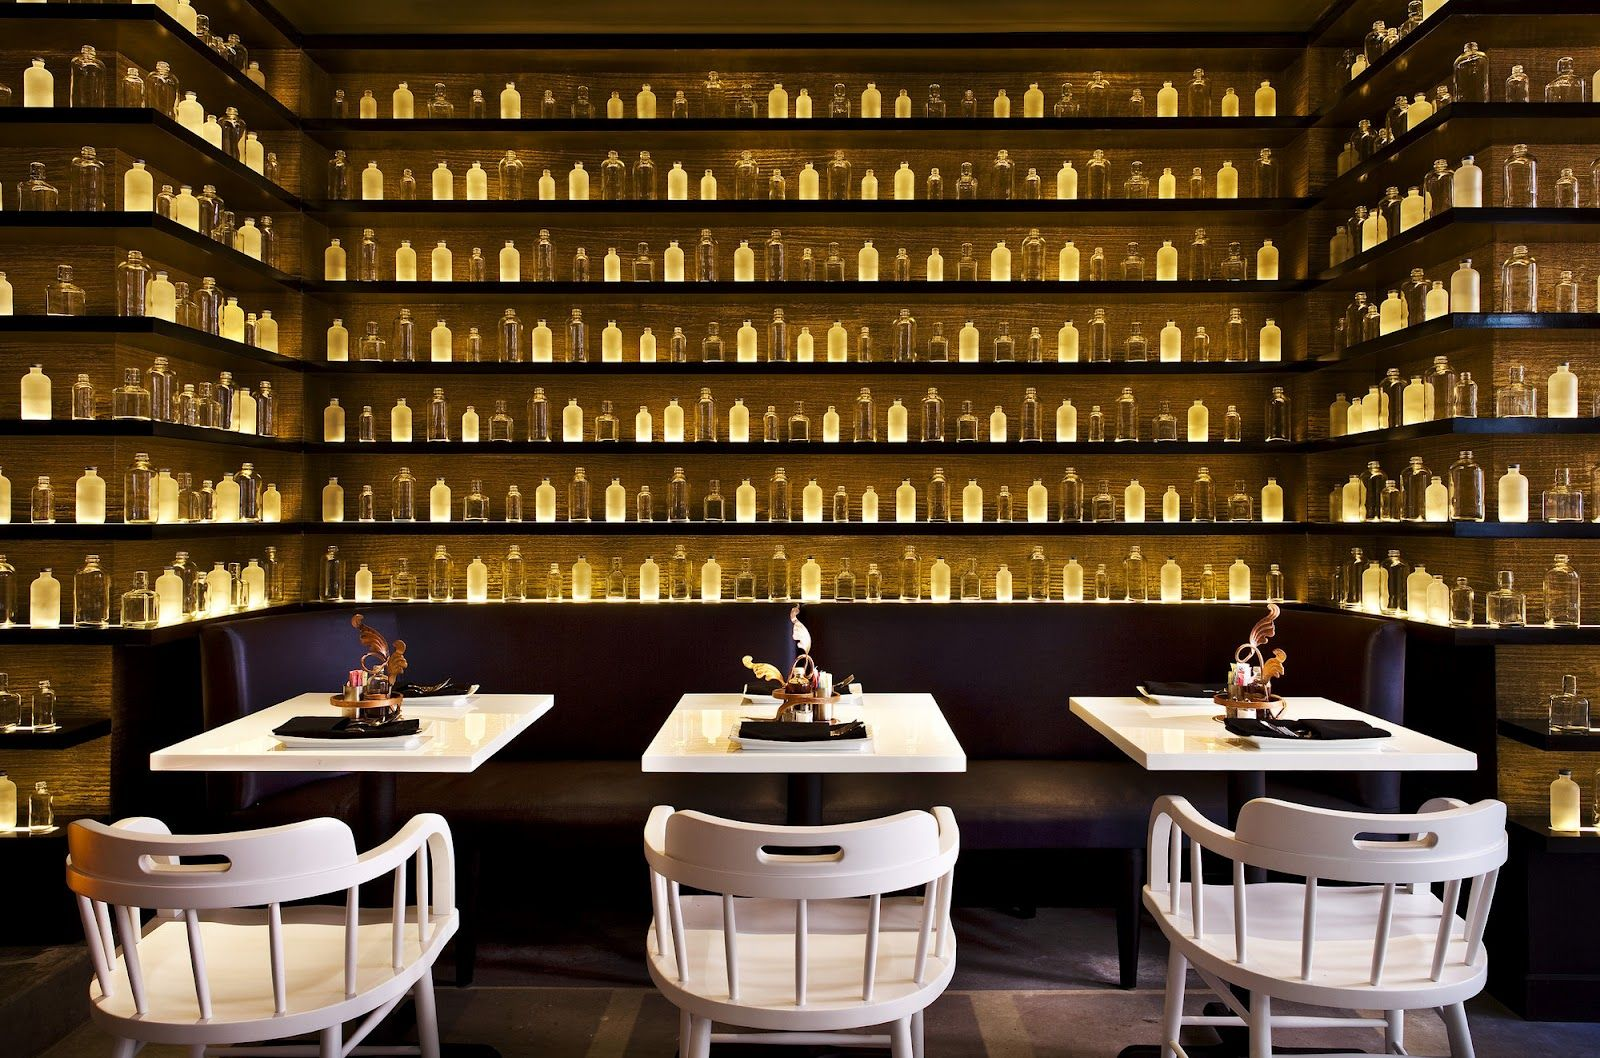 Restaurants Feature Wall Designs: Bottle Wall Feature Wall - Google Search